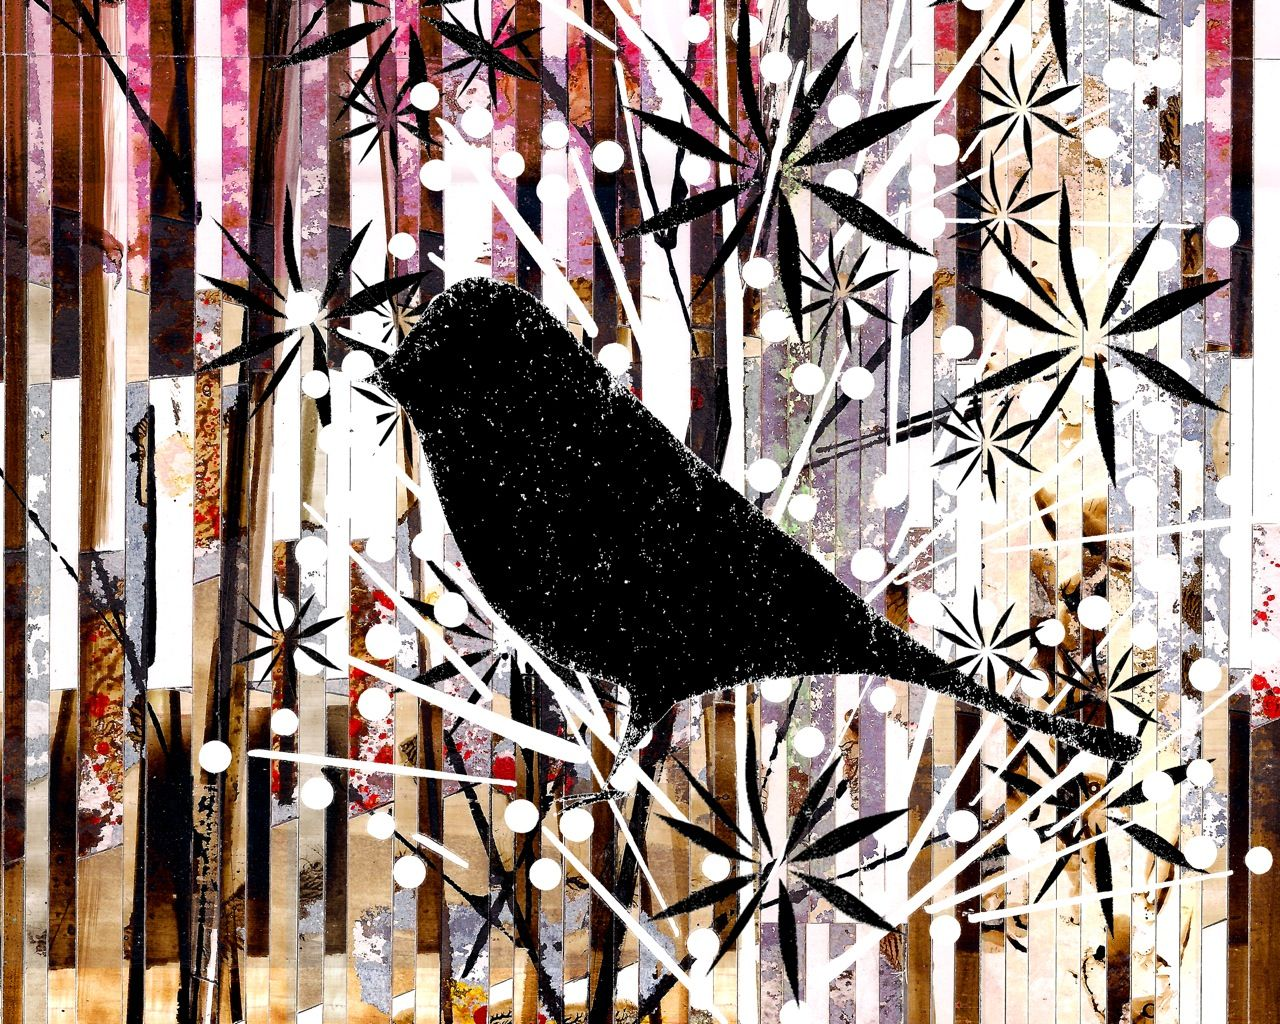 """Blackbird Posing In Blooming Tree, Close-Up / Catfish The Bird Close-up, 11""""X14""""  (Also available in 8""""X10"""", on a separate listing.)  Close-up of Catfish in the, """"Christmas in Springtime Tree"""". This is my best bird friend. Her name is Catfish but she is 100% bird. We found this tree and decided that it looked like Christmas but also Spring at the same time. I did a larger painting but this is one of her close-ups."""